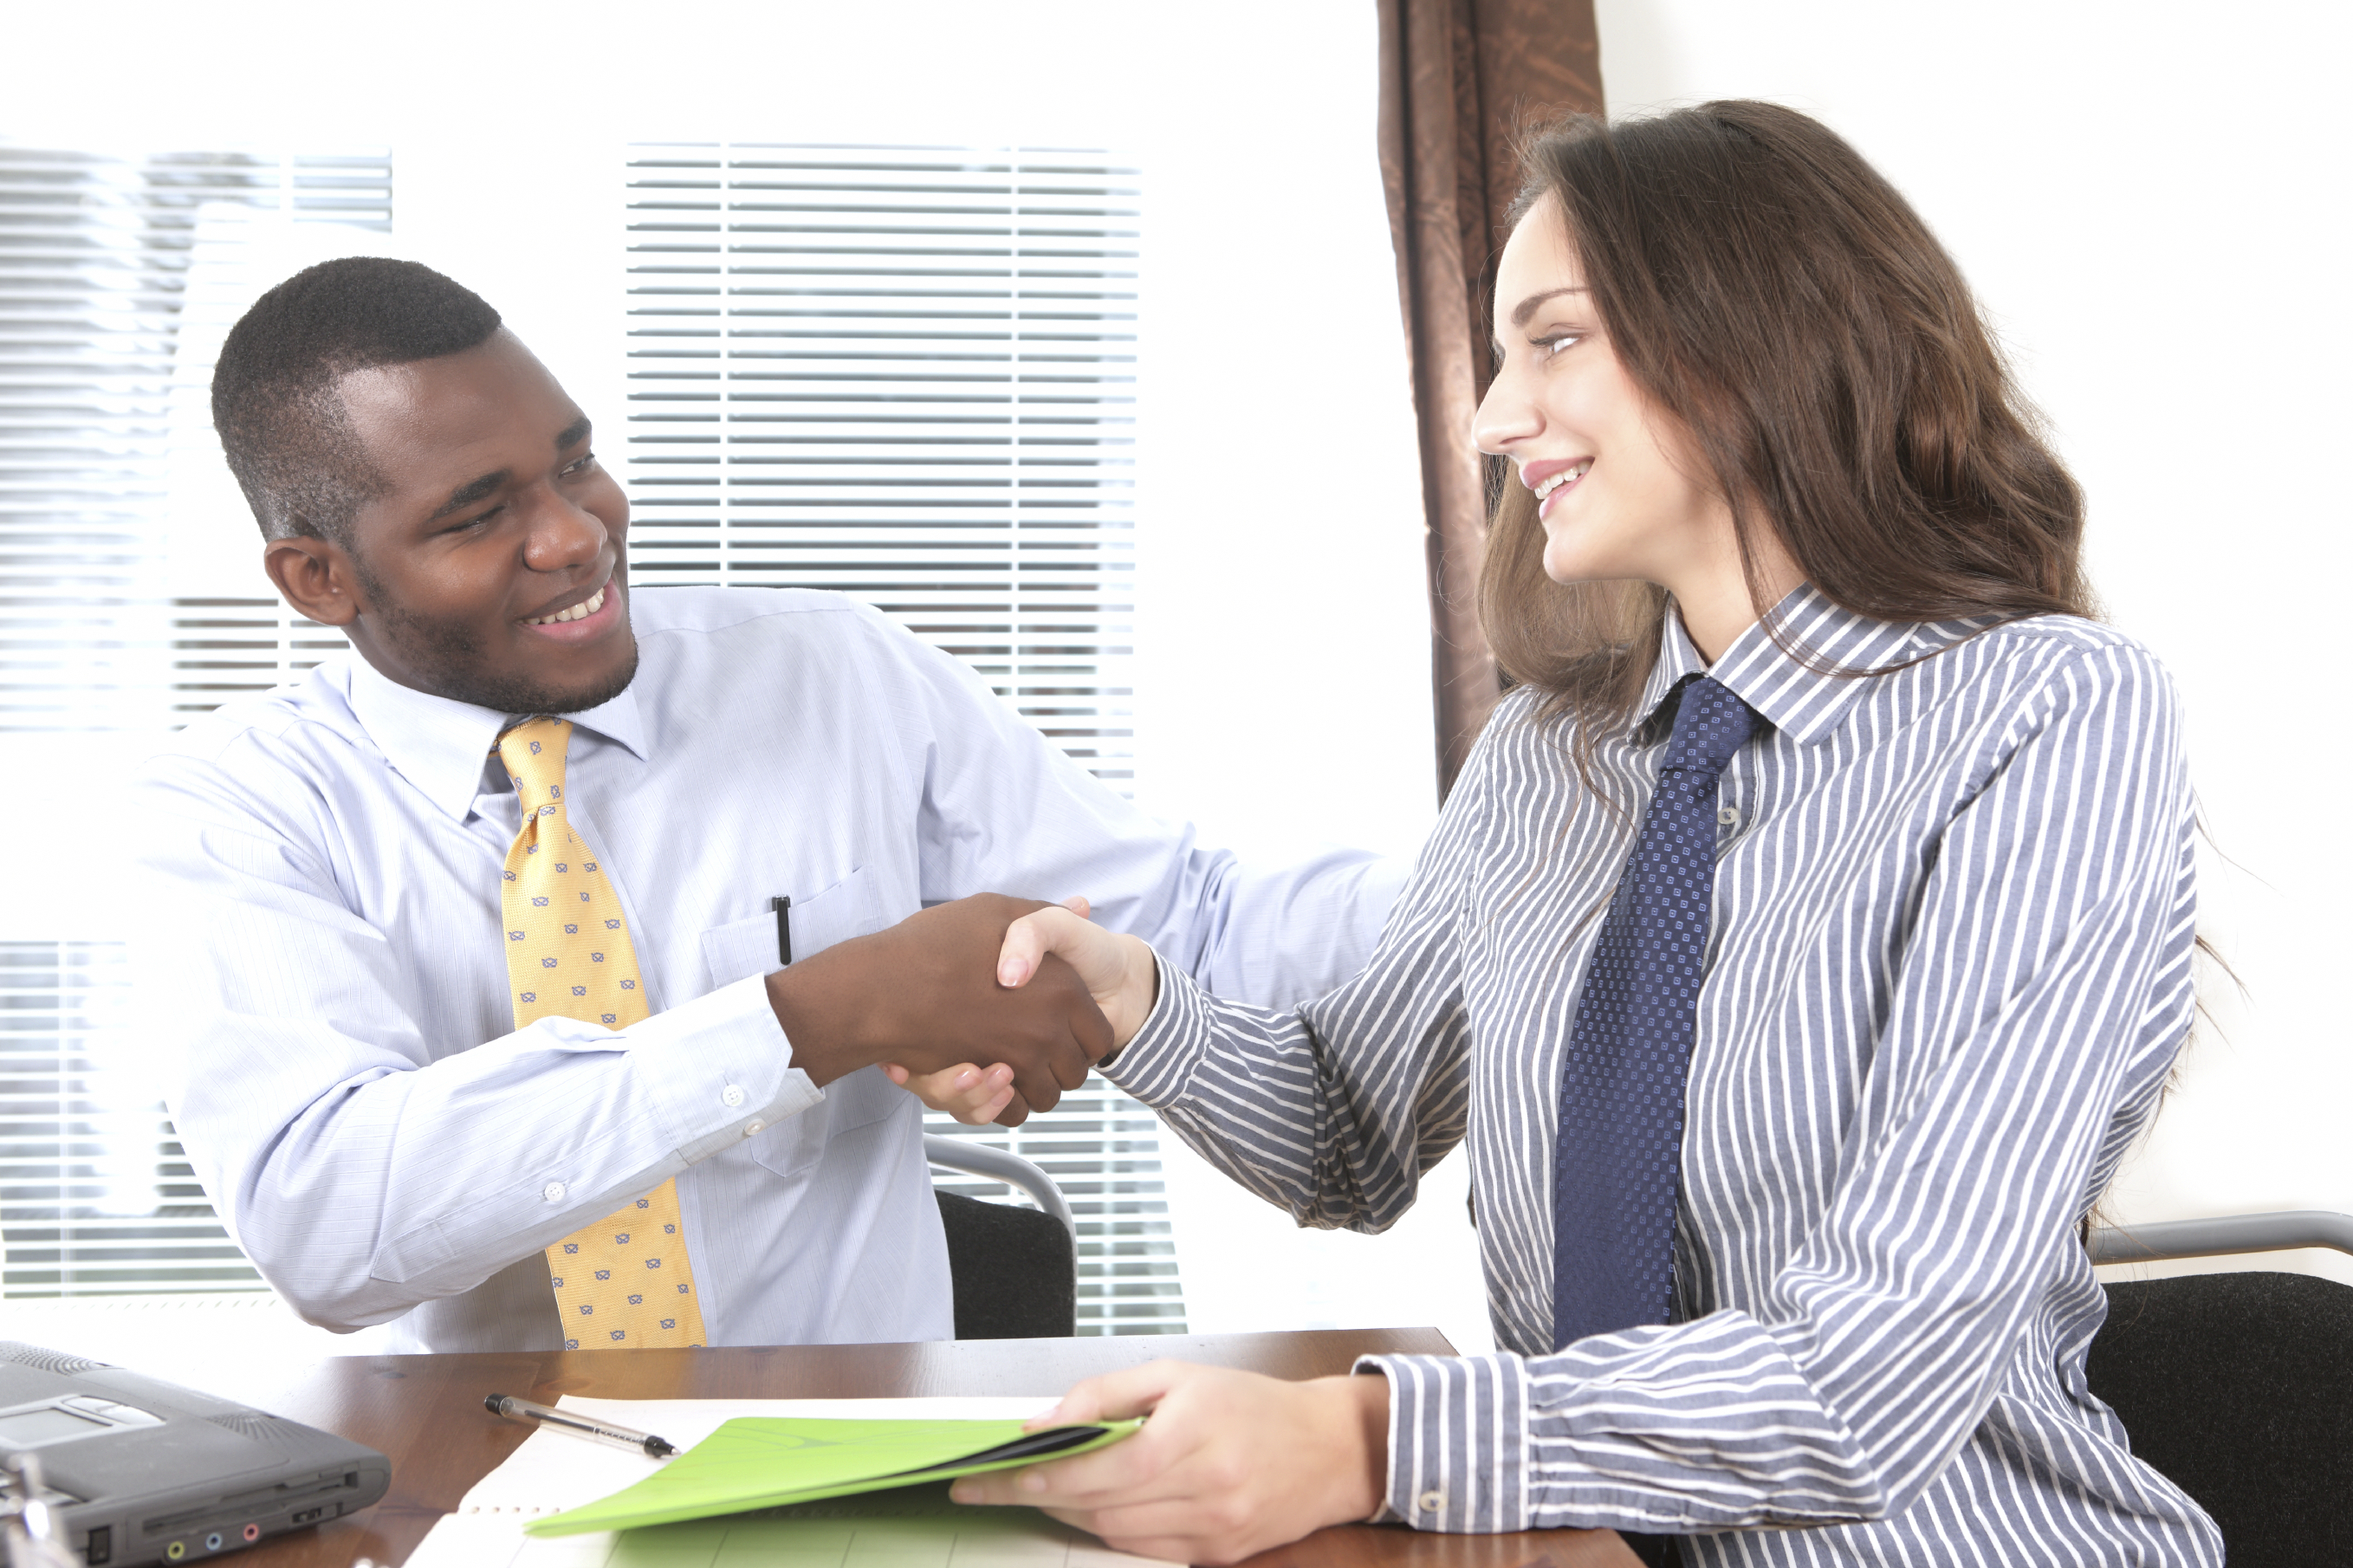 5 Body Language Mistakes to Avoid at Your Next Interview - MyJobHelper Blog